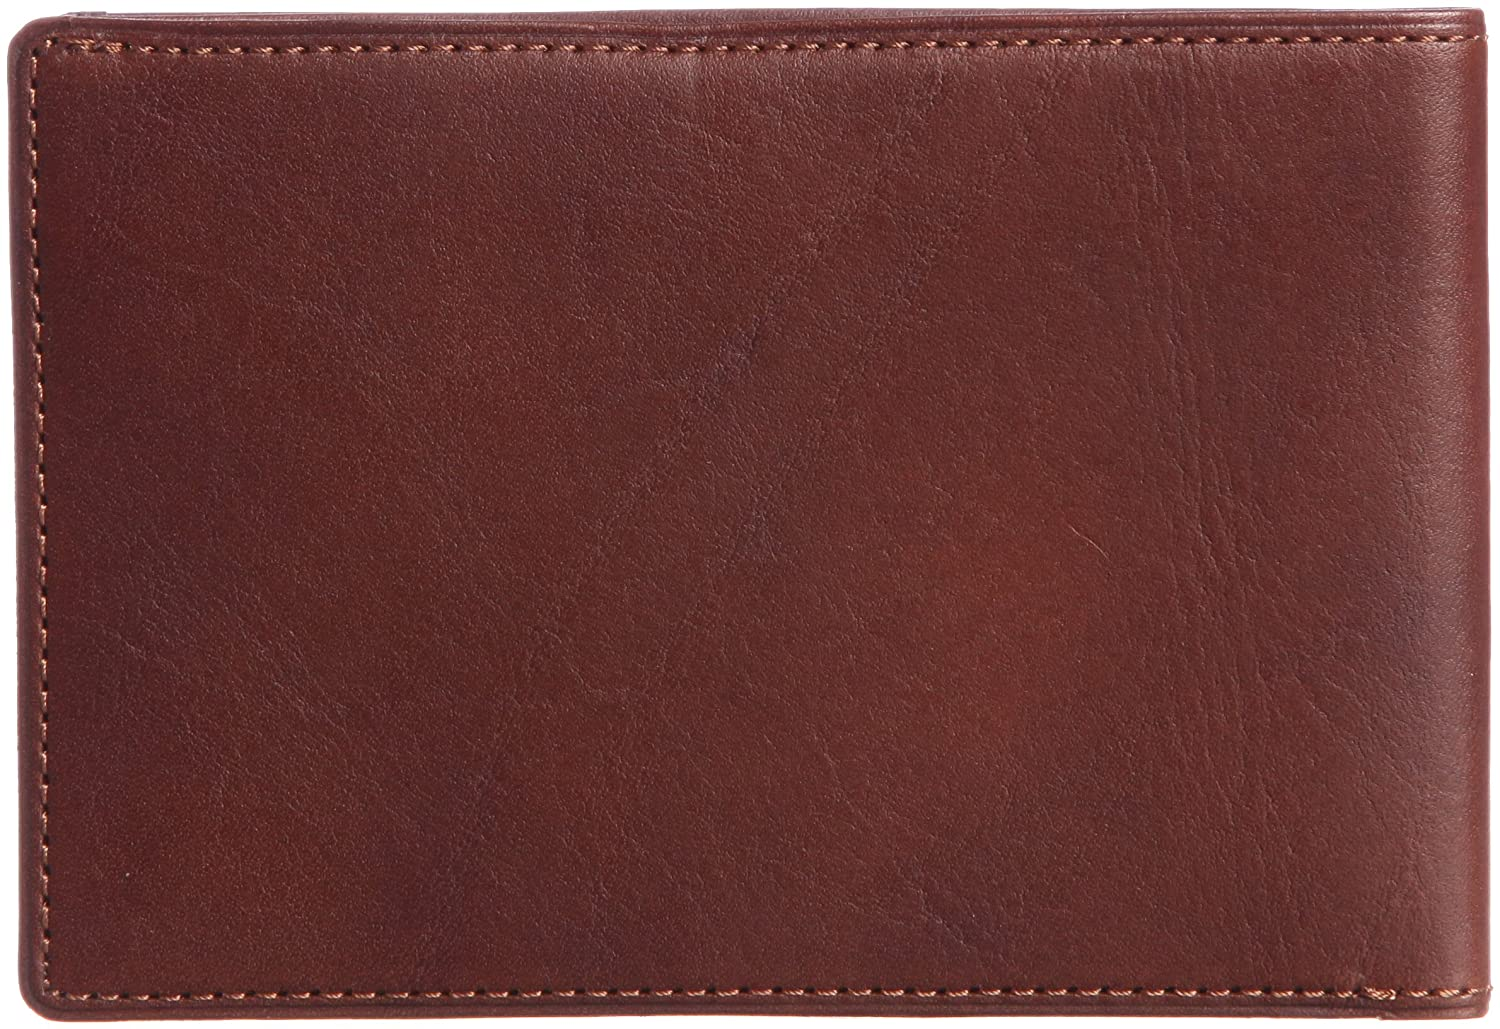 THINly Leather Bifold Wallet SLBS01 Chocolate